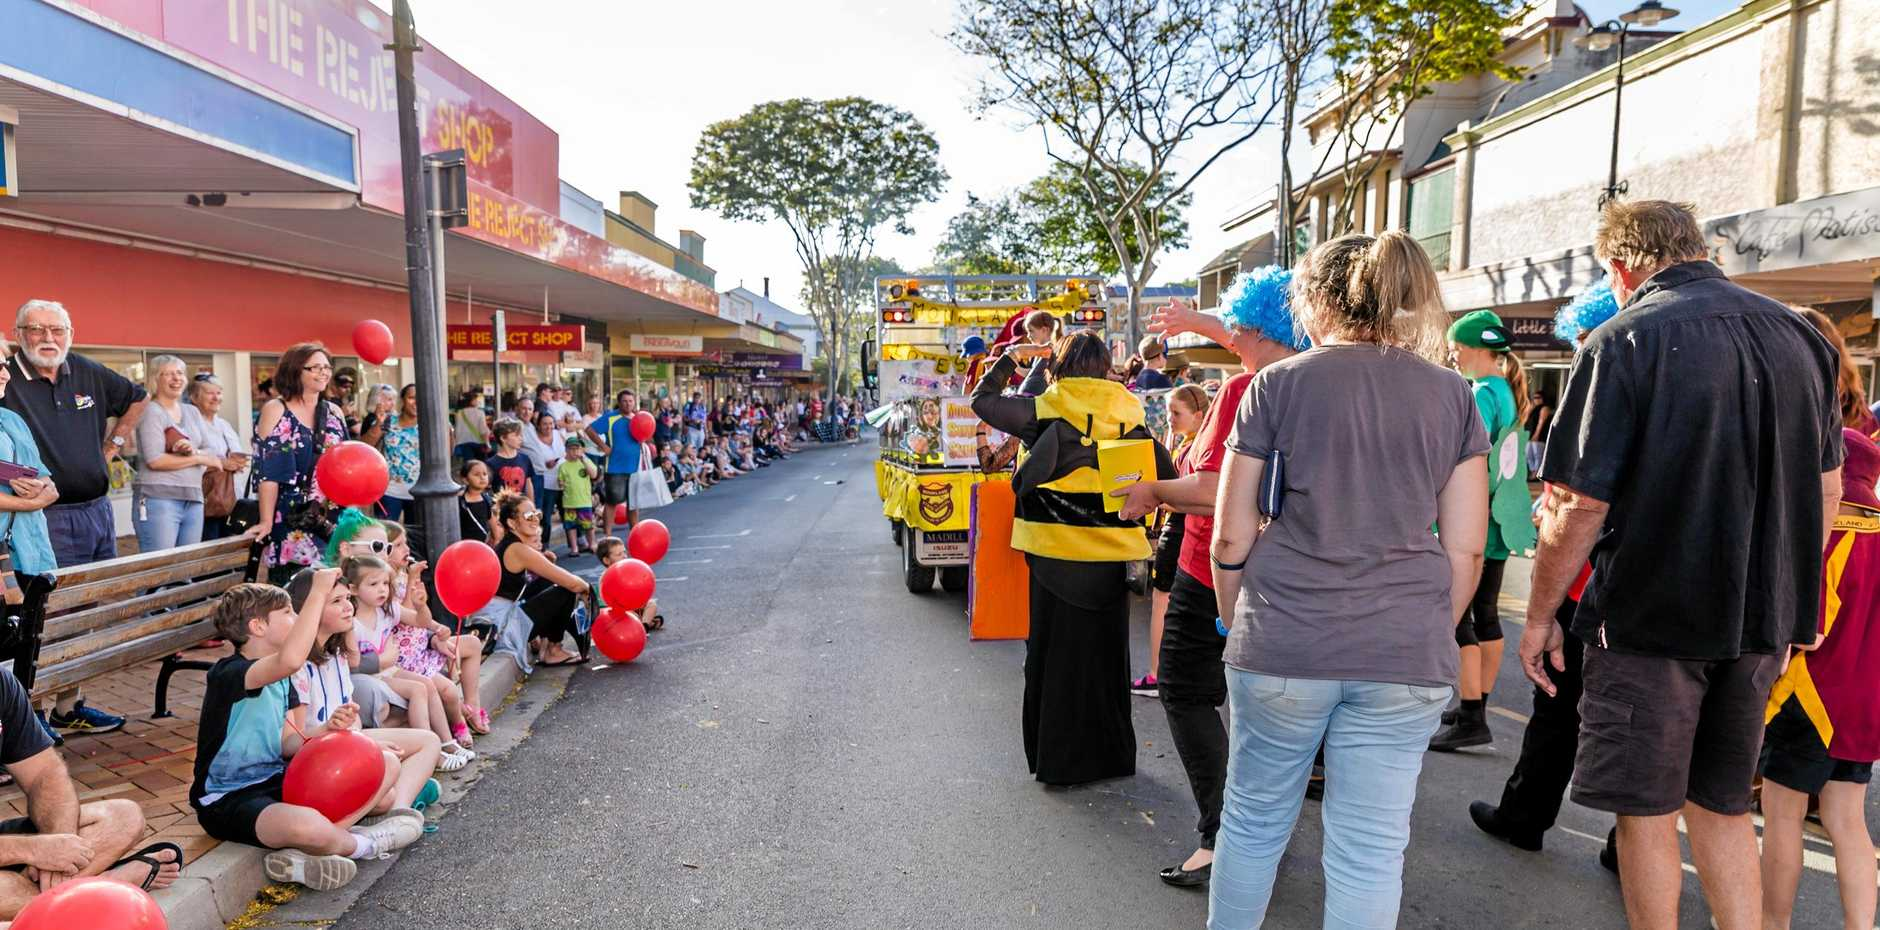 A Gympie Gold Rush parade 2016 - Gympie Regional Council is considering a big change to this year's Gold Rush Festival by including a Friday night parade instead of a Saturday daytime parade.